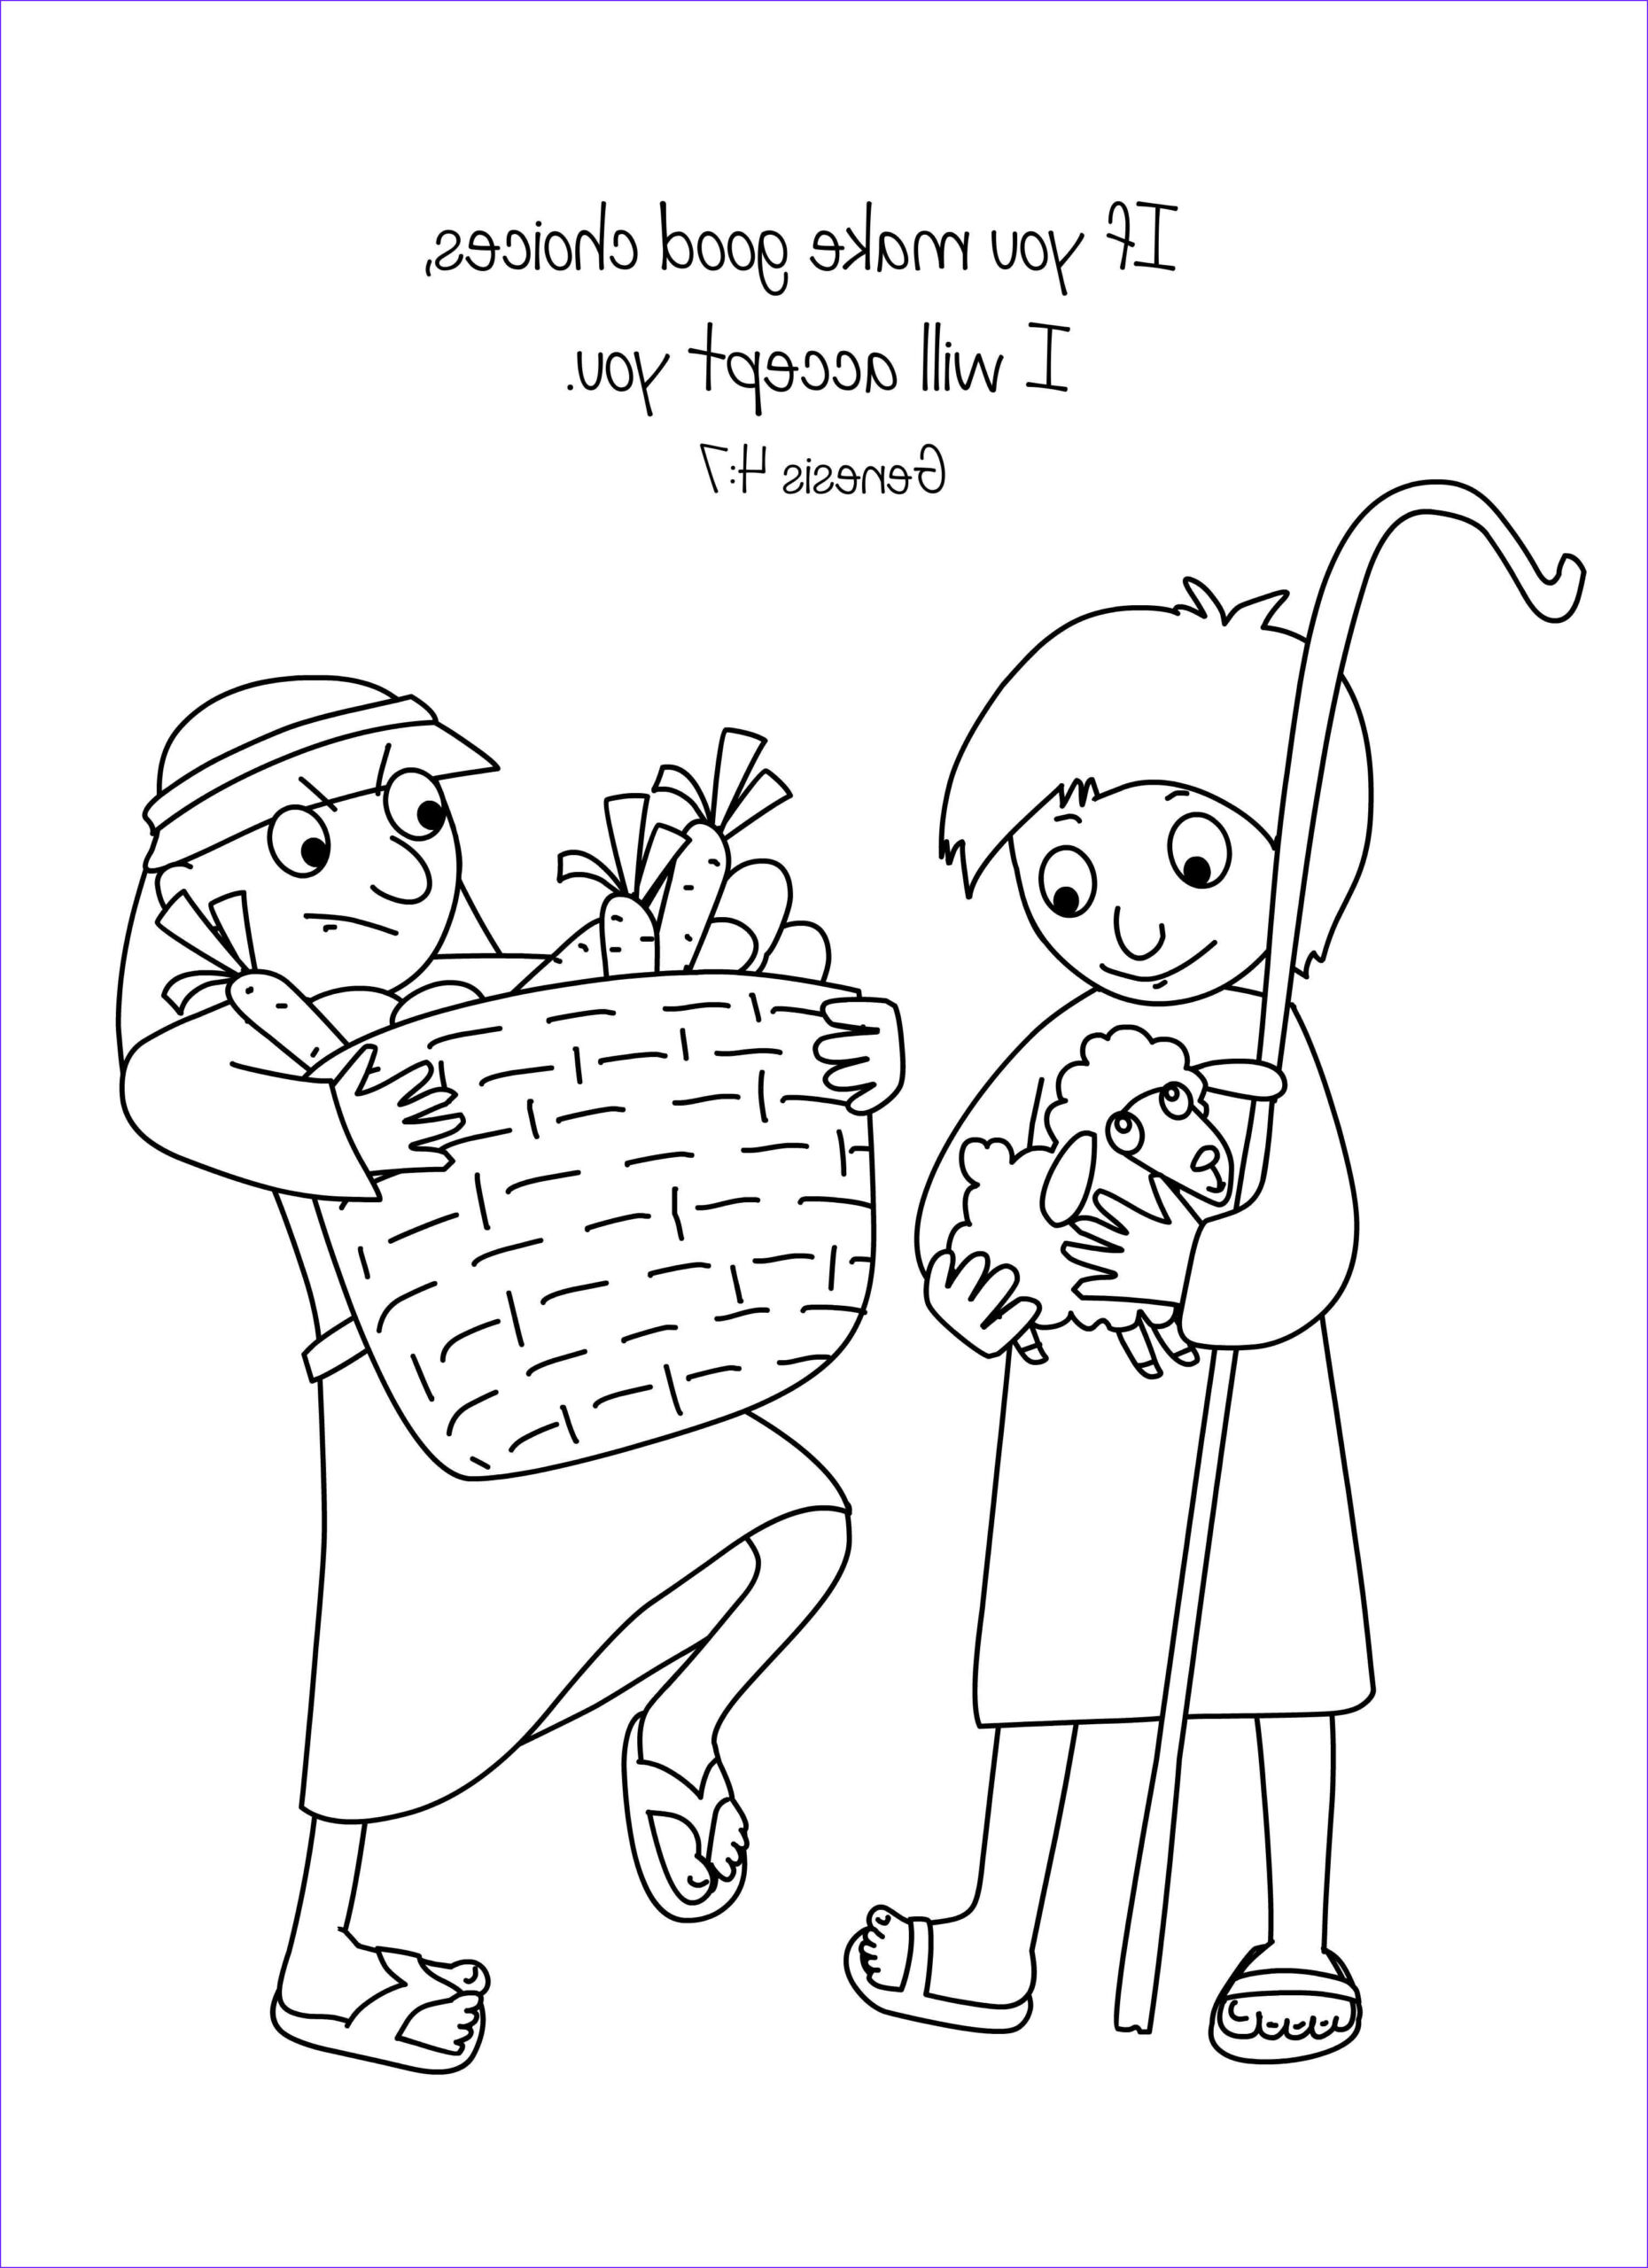 Free Bible Story Coloring Page Cool Gallery Free Bible Coloring Page Cain and Abel